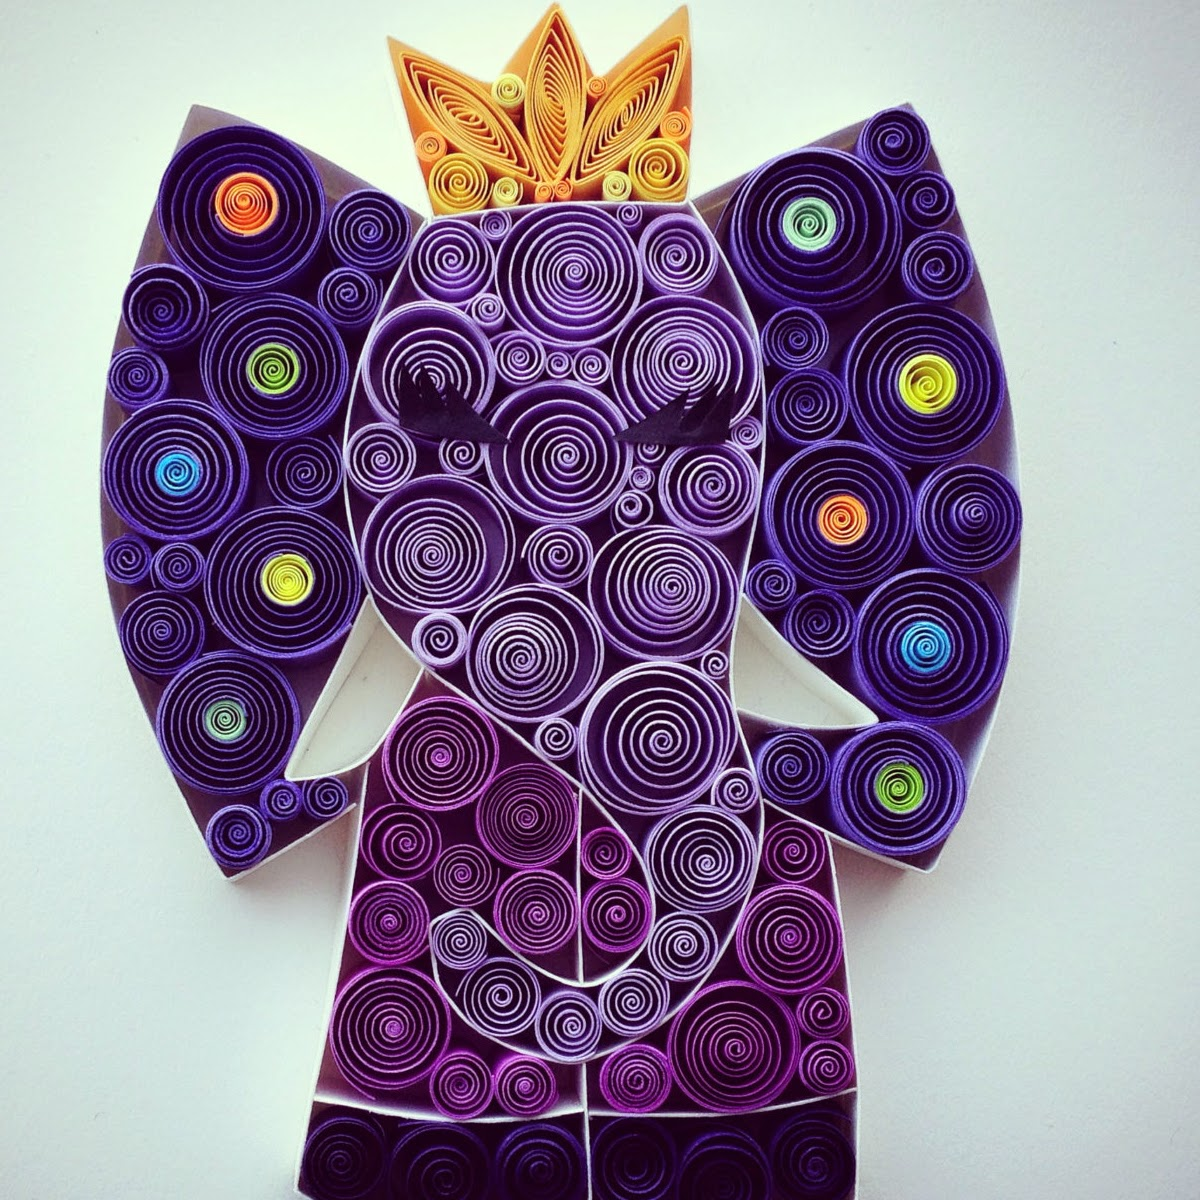 18-Dumbo-Sena-Runa-Drawing-and-Quilling-a-match-made-in-Heaven-www-designstack-co